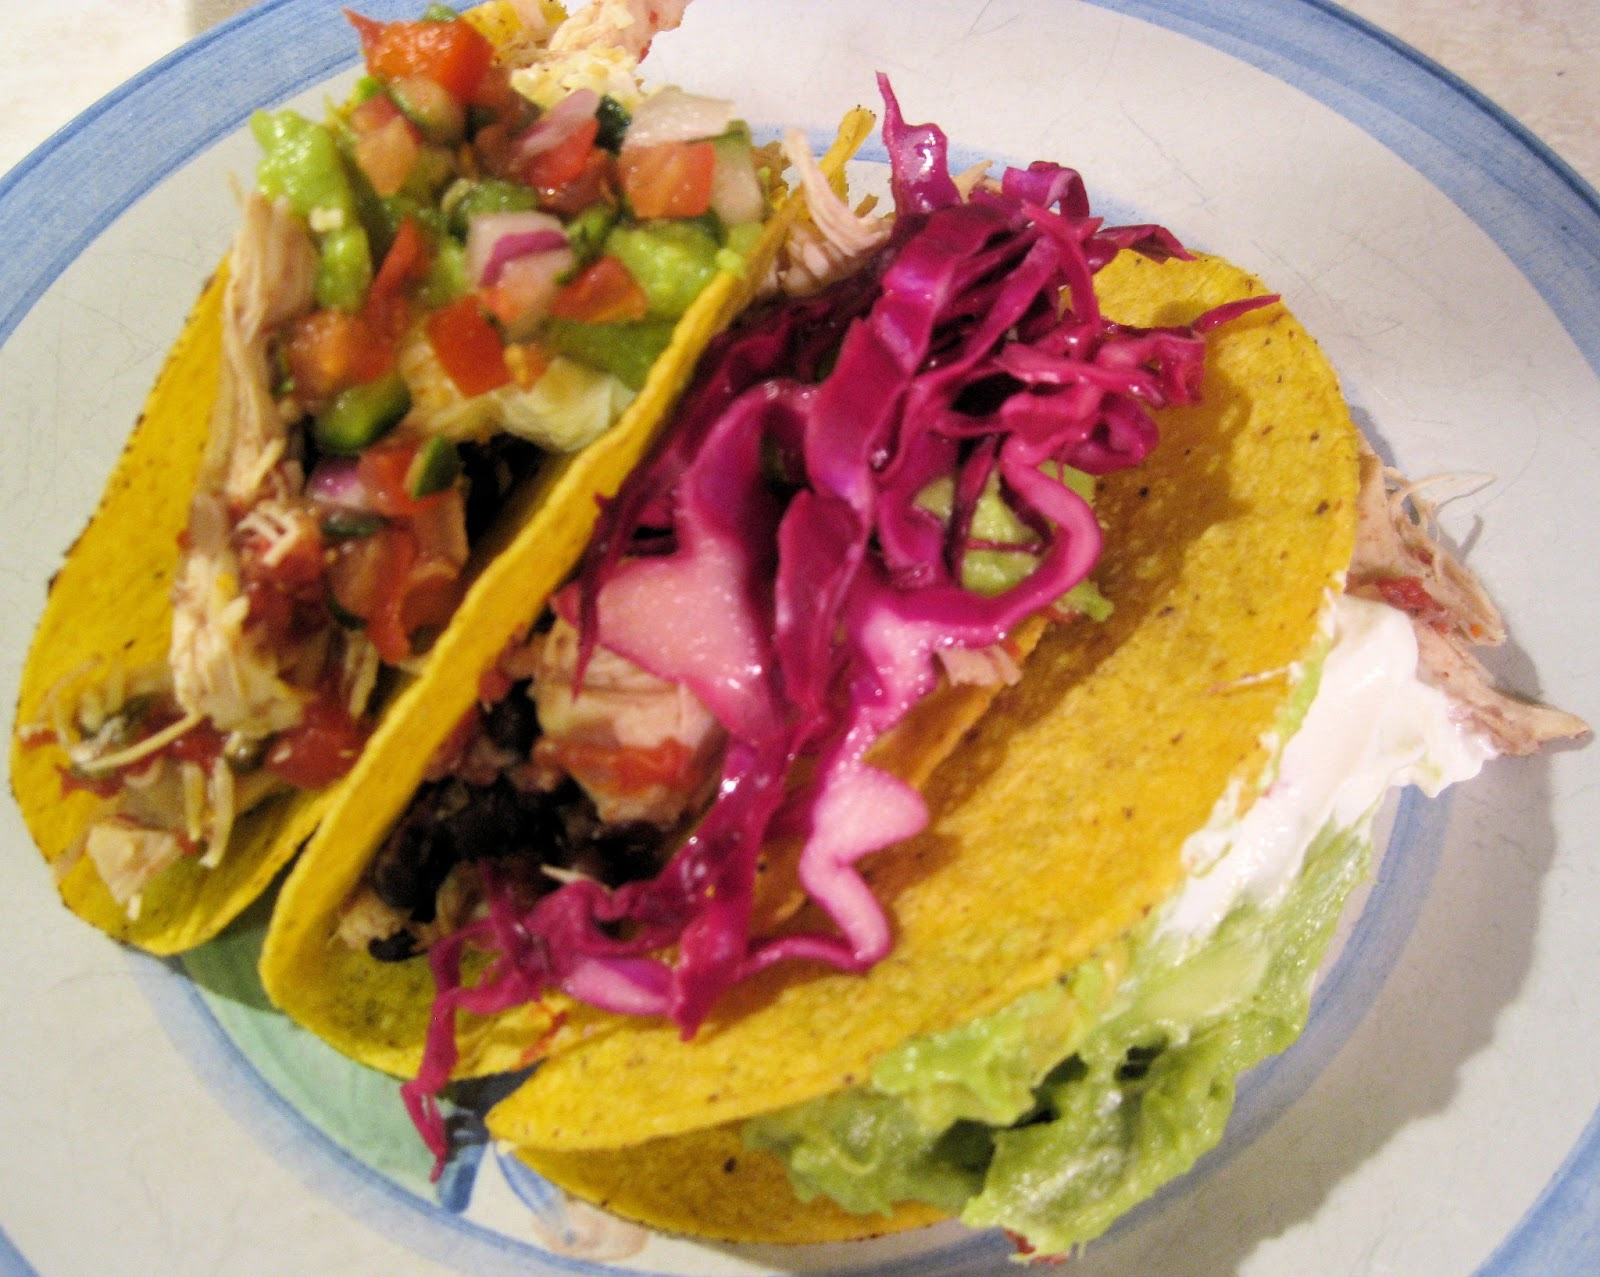 ... Kennedy - May Way, Every Day!: Slow-Cooker Chicken Black Bean Tacos